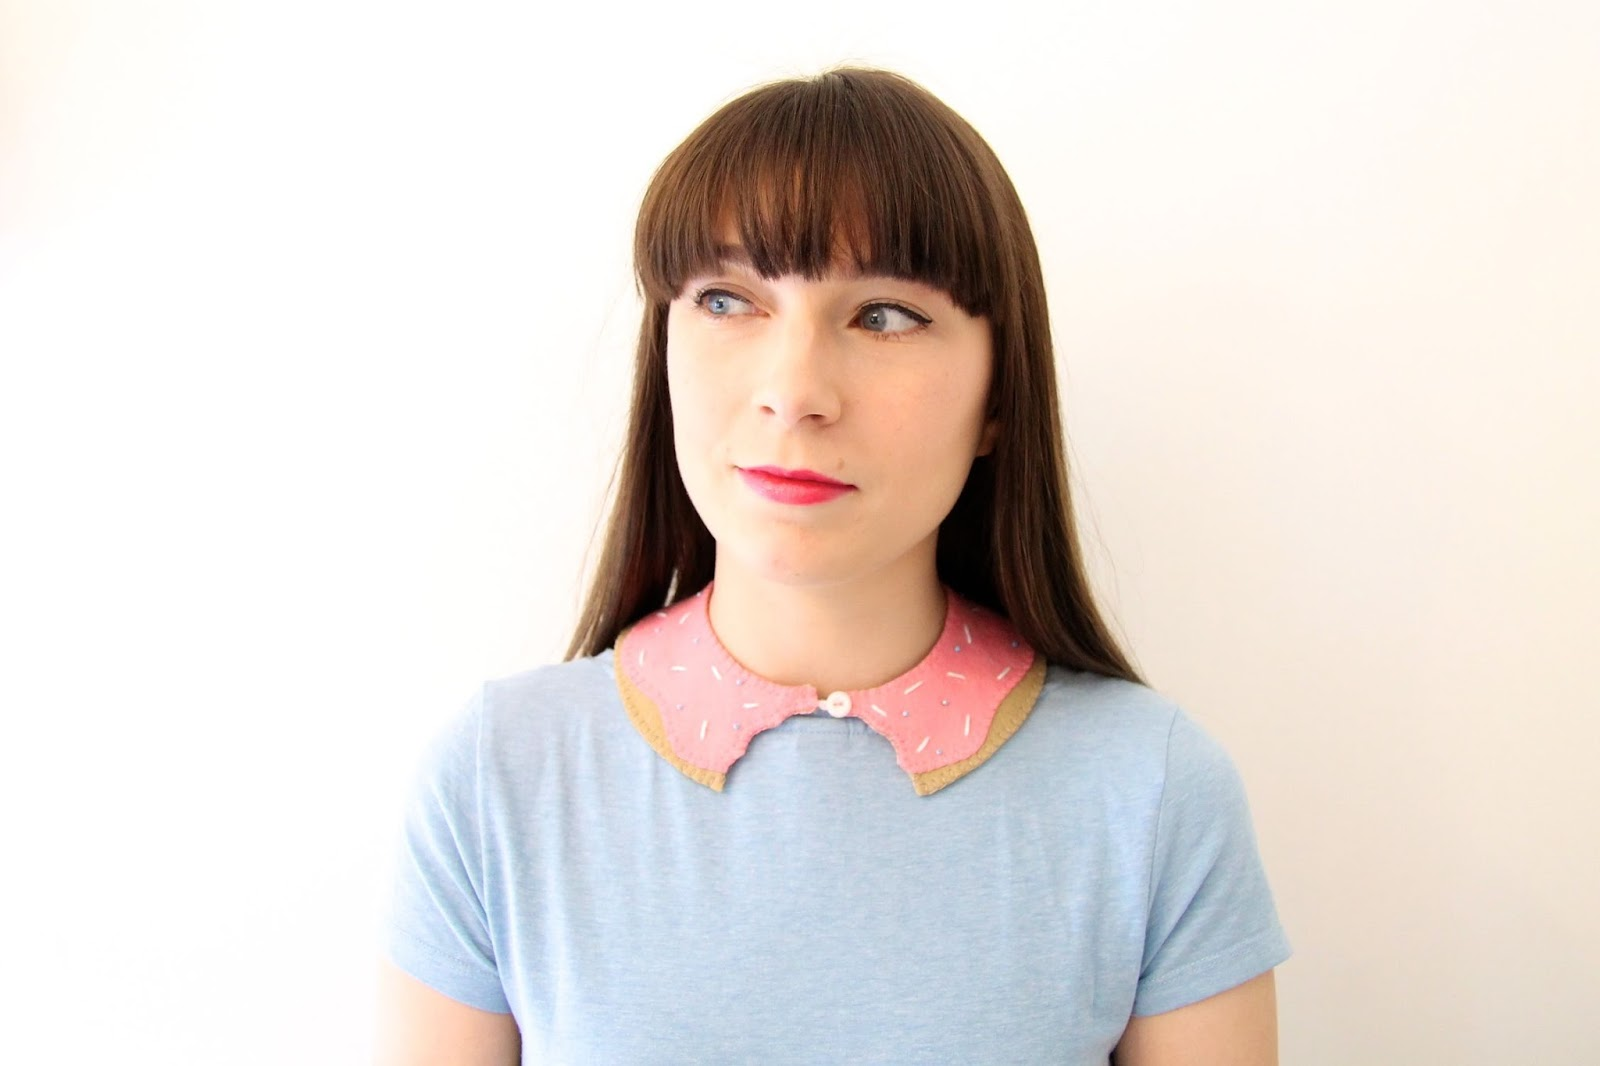 DIY Felt Donut collar tutorial